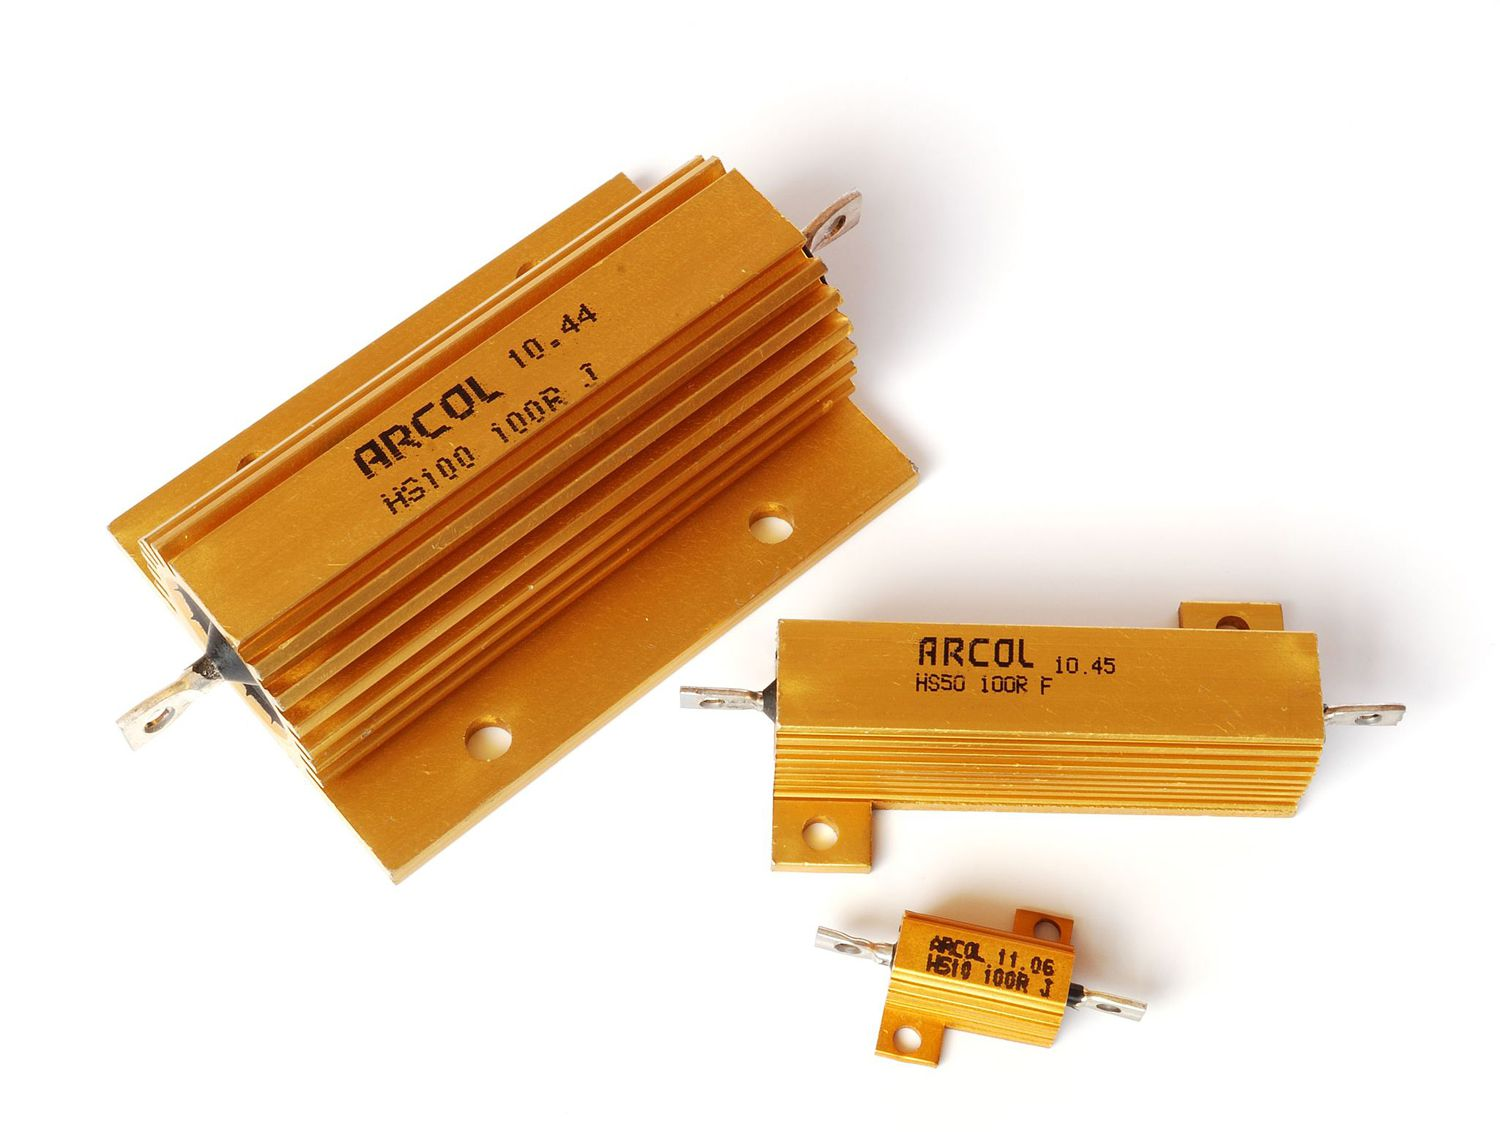 Mephisto also 251775 together with Deluxe Micro additionally How To Use Boost Step Up Converter Mc34063 moreover Power Resistors 818837. on power capacitor use